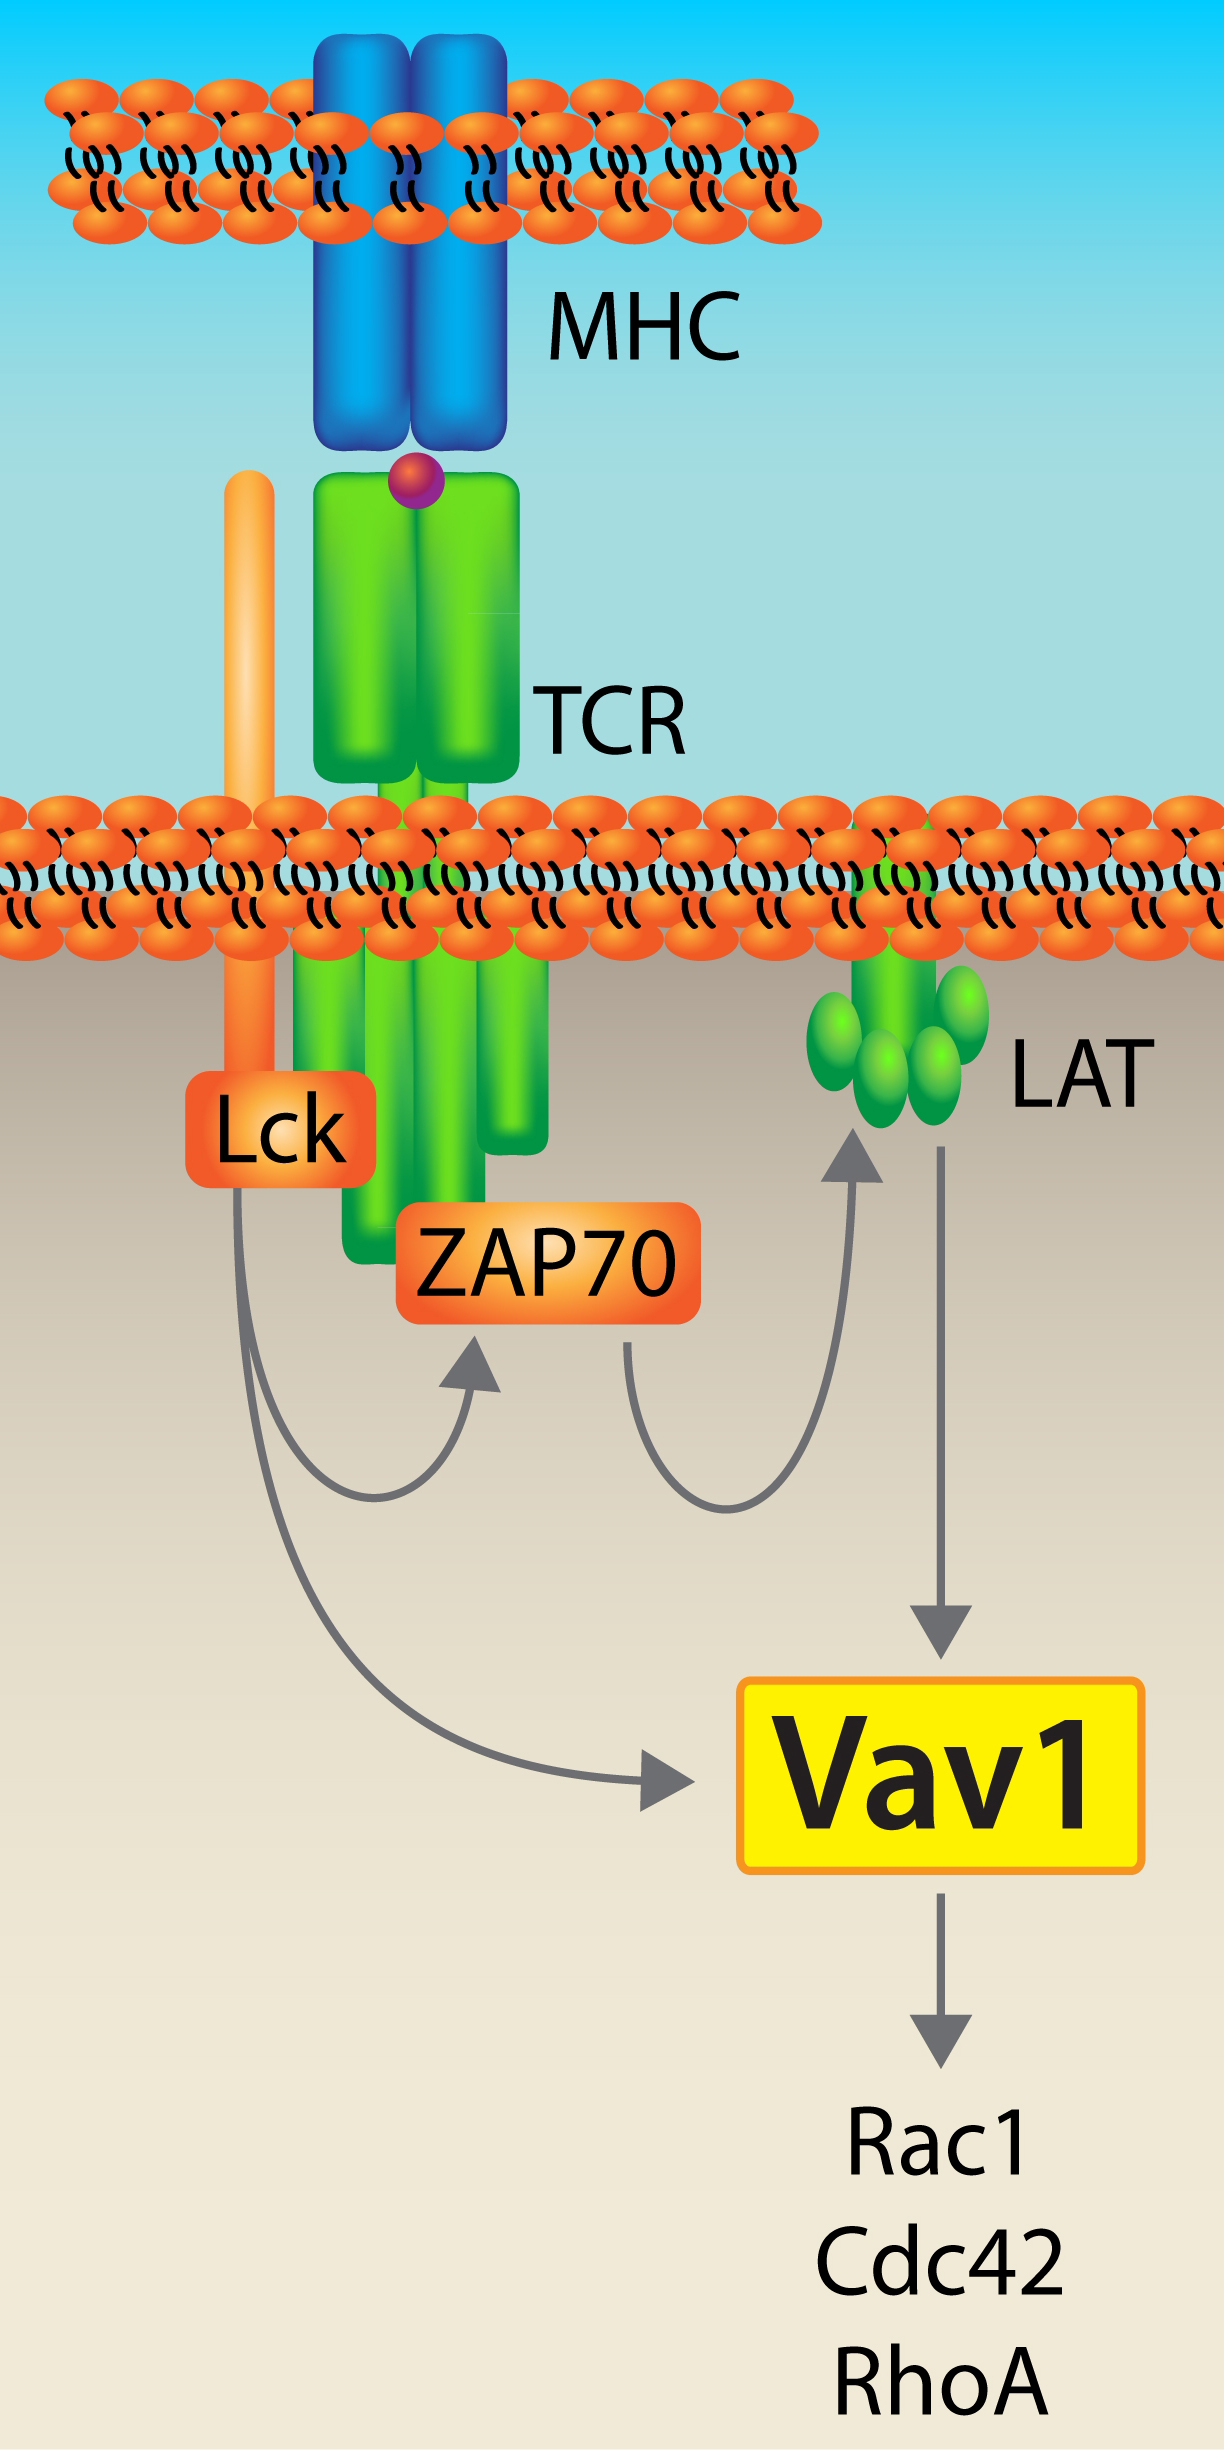 Vav1 GTP Exchange Factor (GEF) of Rac1, RhoA and Cdc42.